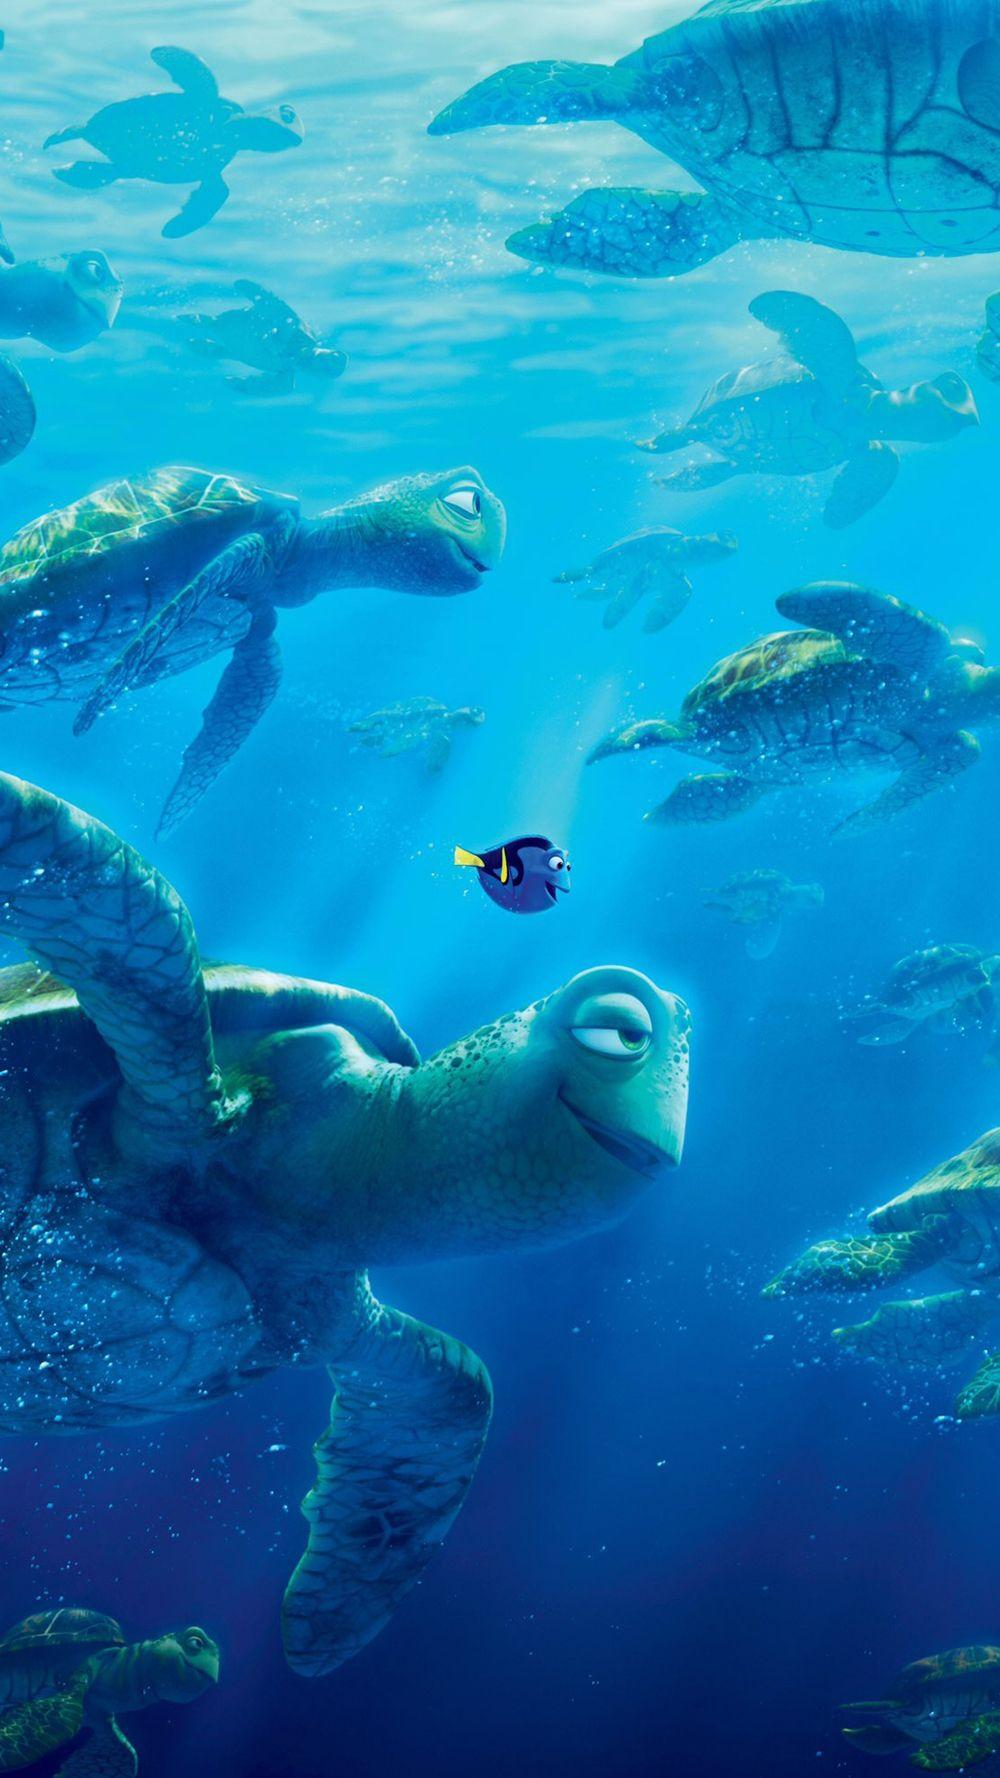 Finding Dory: Downloadable Wallpapers for iOS & Android Phones